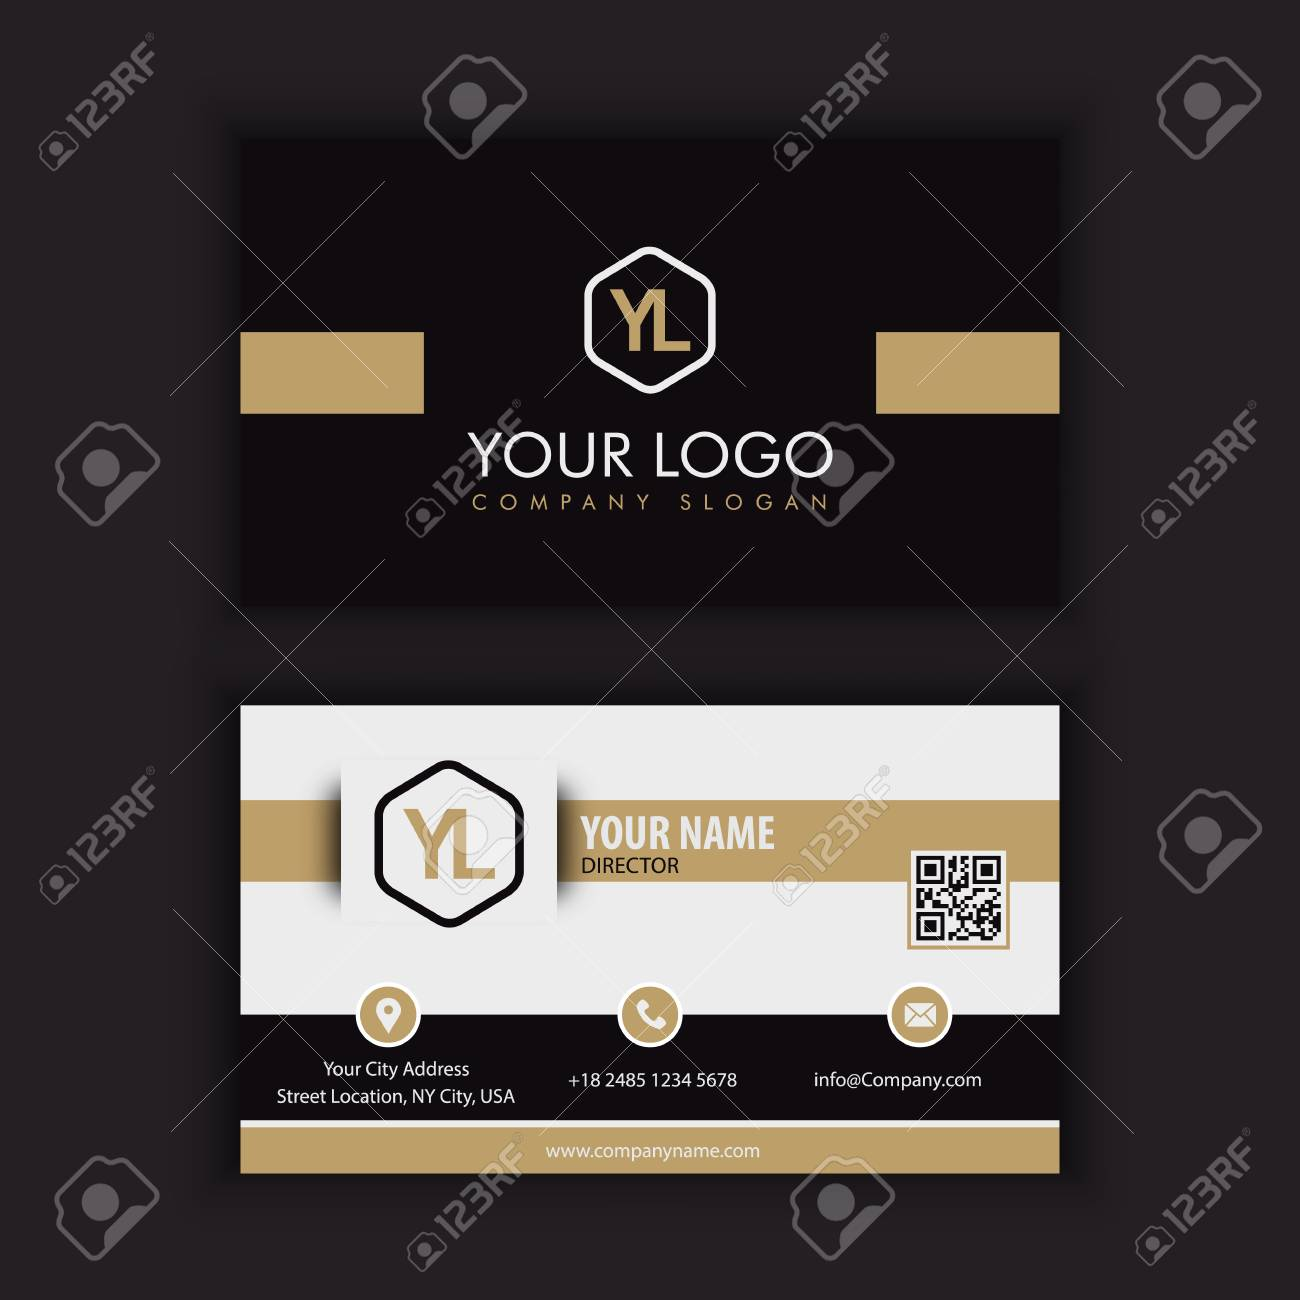 Modern Creative and Clean Business Card Template with gold dark color - 87647547